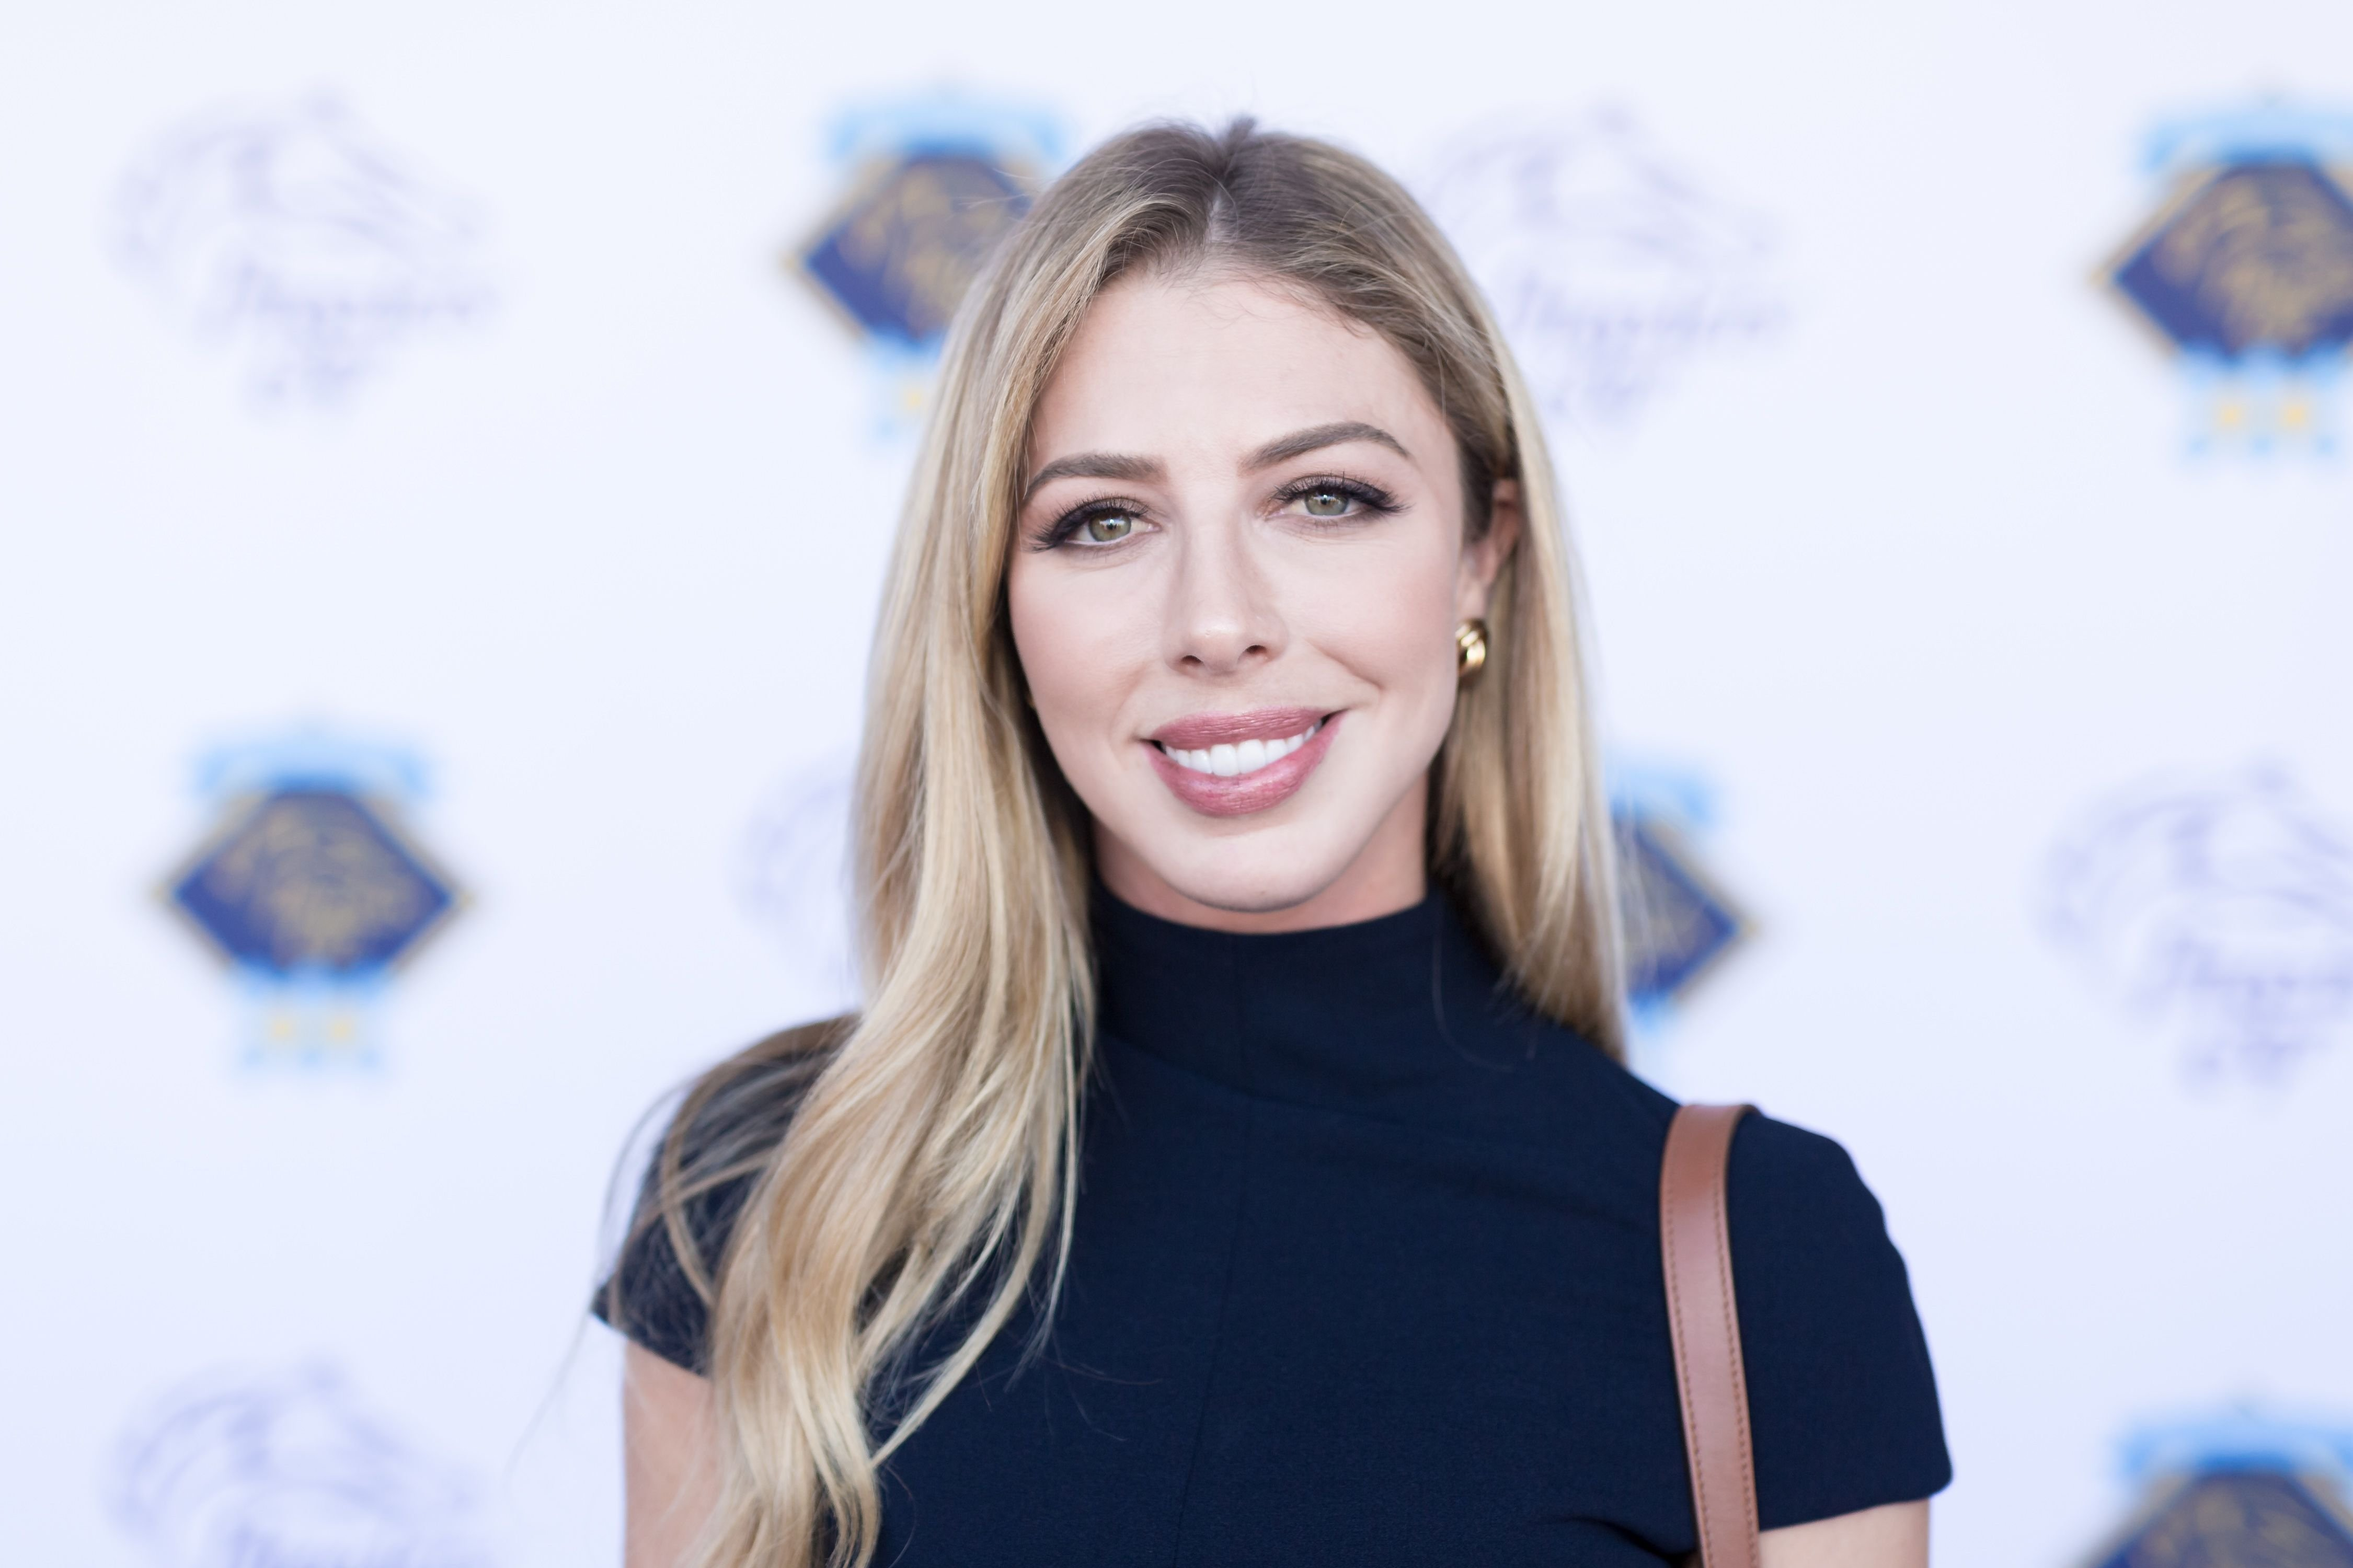 Hannah Selleck at the 2017 Breeders' Cup World Championship at Del Mar Thoroughbred Club on November 4, 2017 | Photo: Getty Images